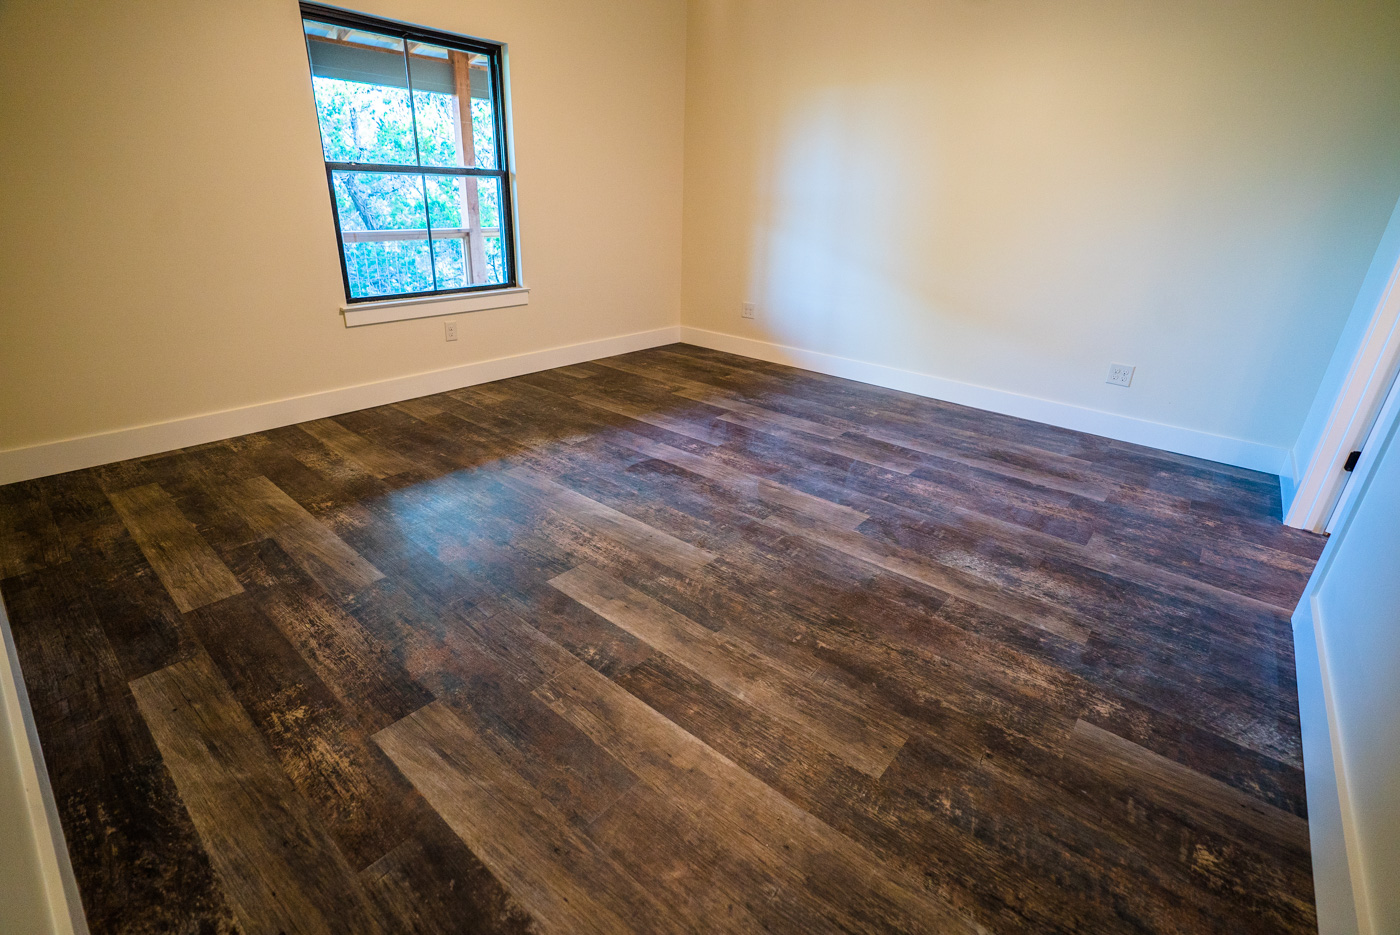 Homer Wood - Hardwood Flooring - Quality Floors and more